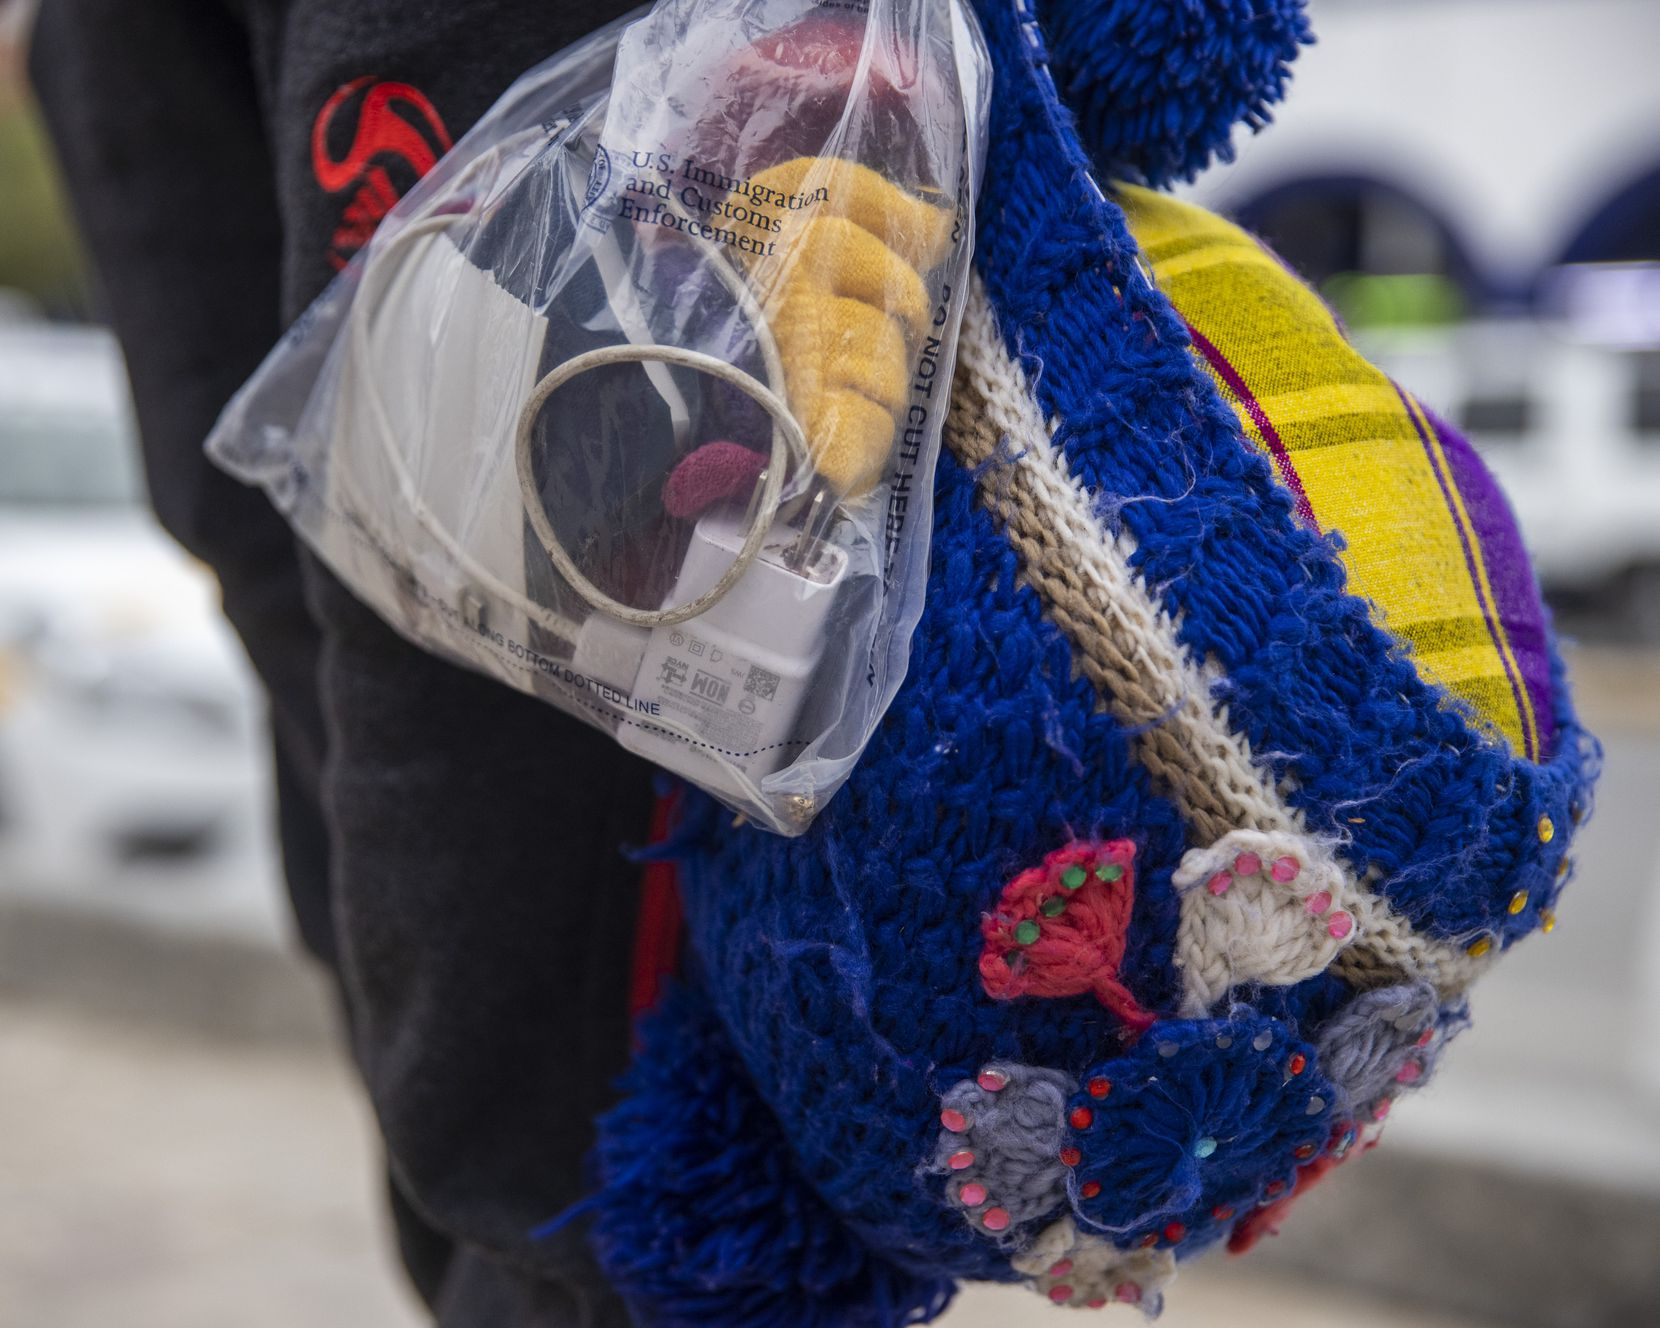 Isabela Julaj holds her few belongings in a U.S. government-provided plastic bag and a knit bag as she waits with other migrant families stranded in the plaza near the international bridge in Reynosa, Mexico.